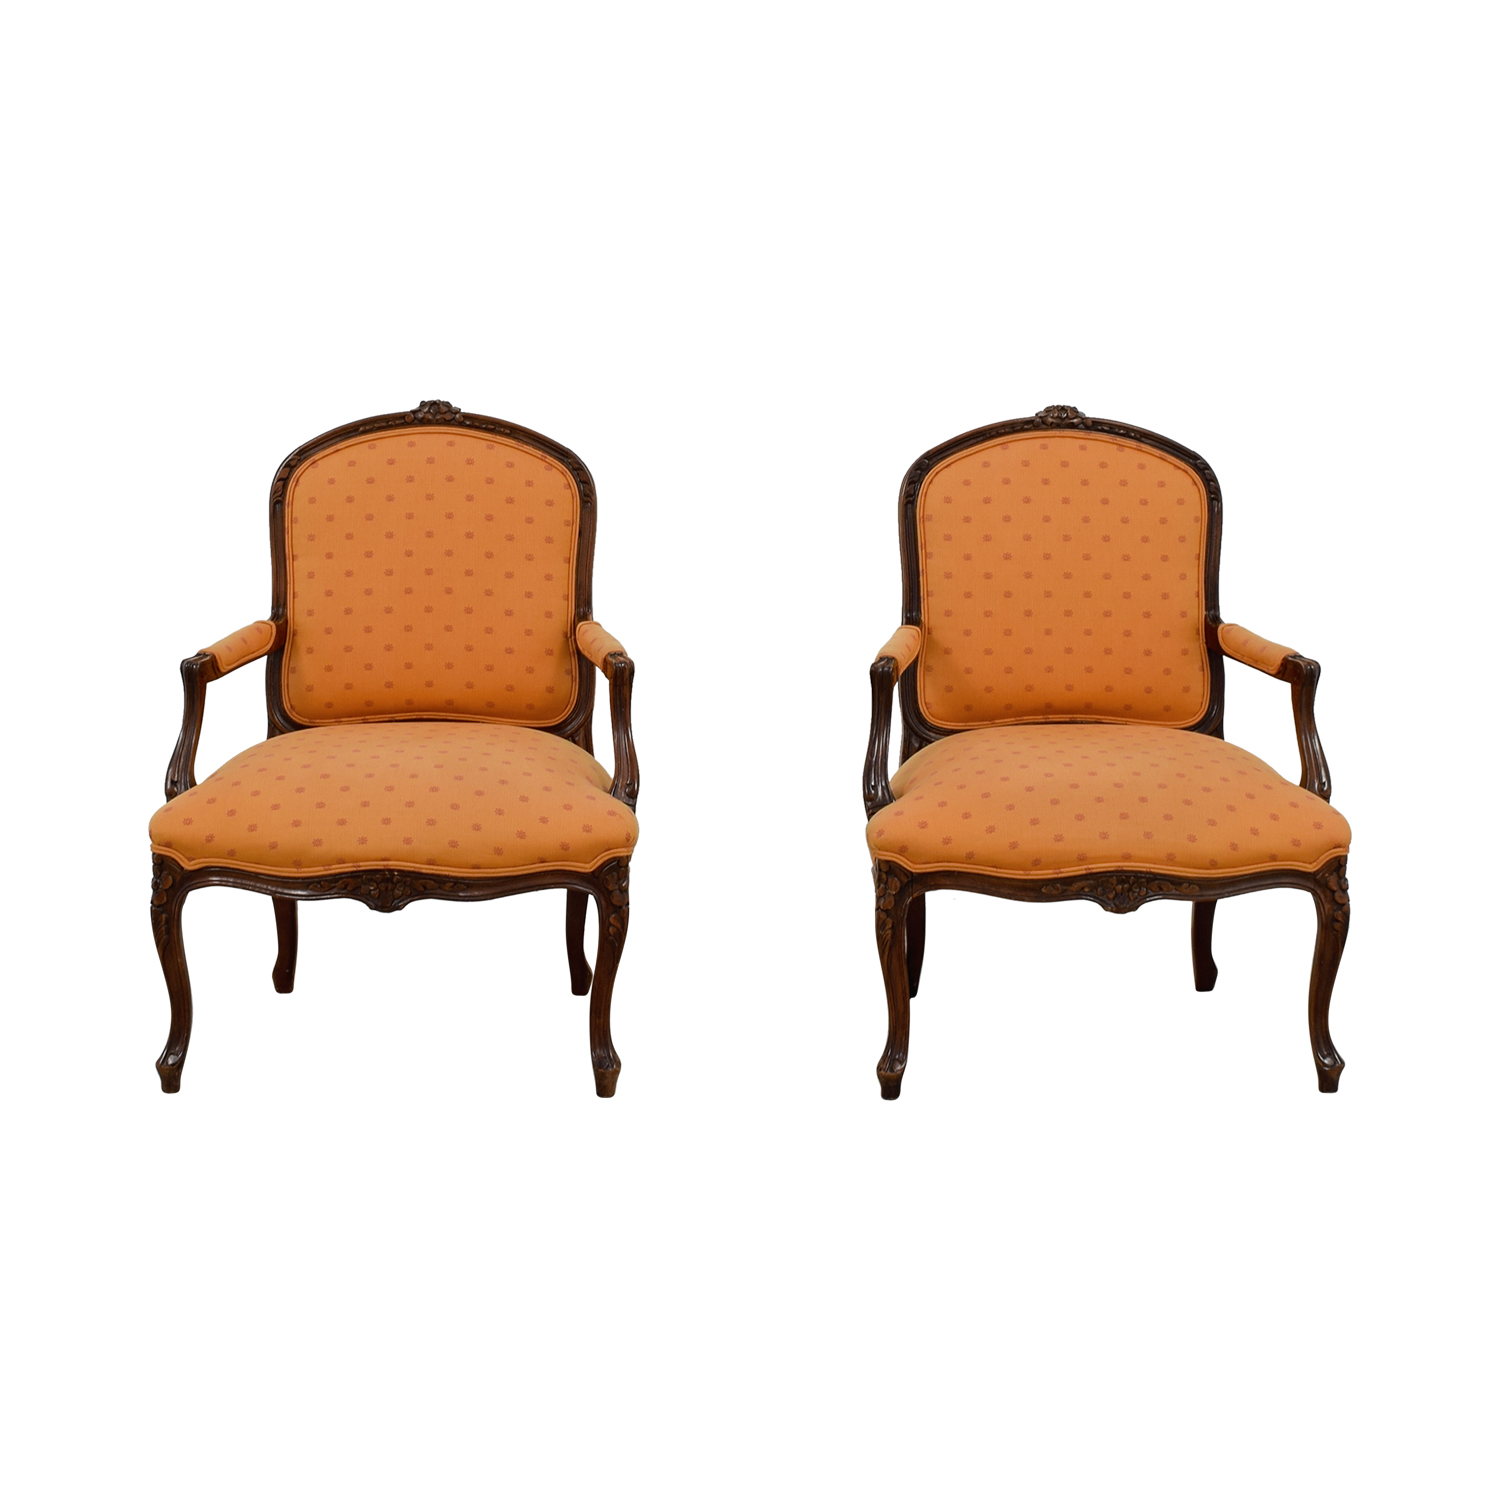 Mid Century Upholstered Chair 79 Off Mid Century Orange Upholstered Arm Accent Chairs